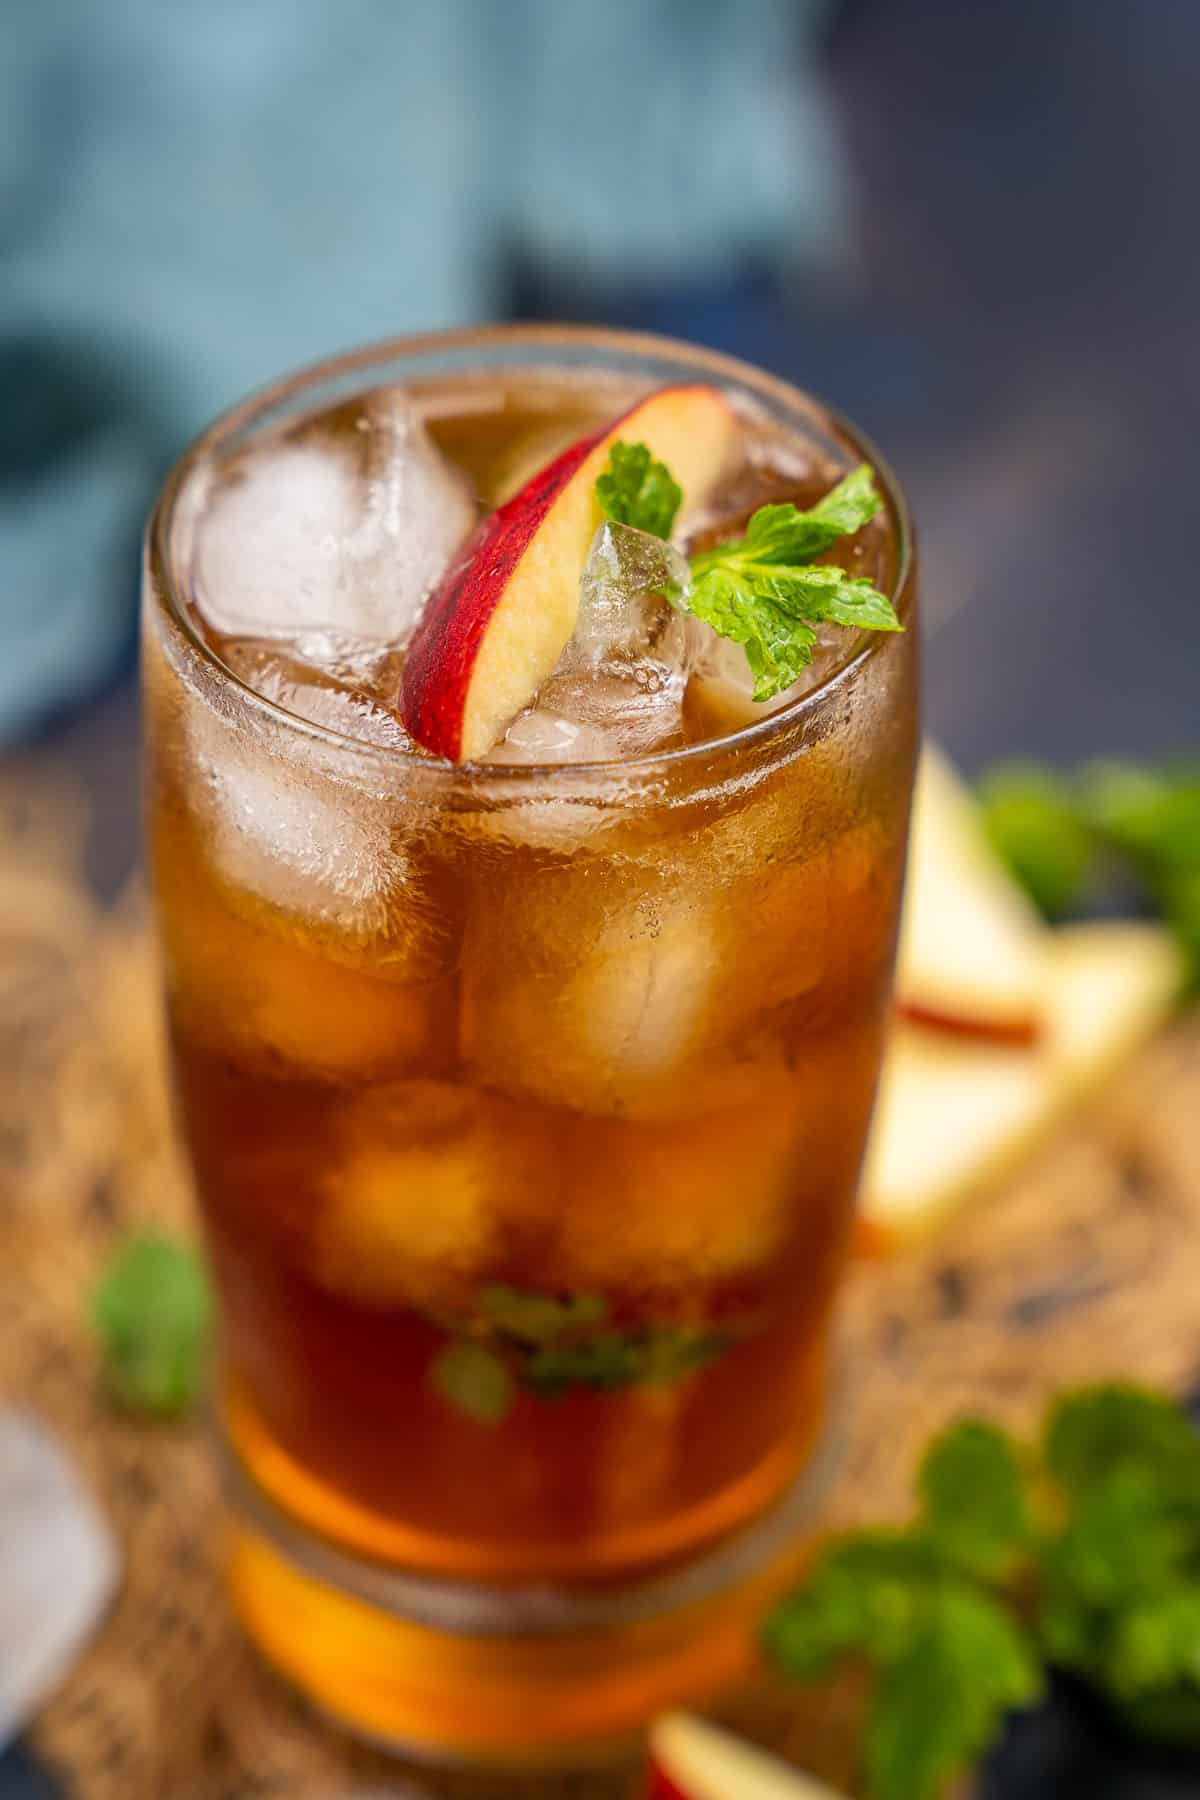 Apple iced tea served in a glass.